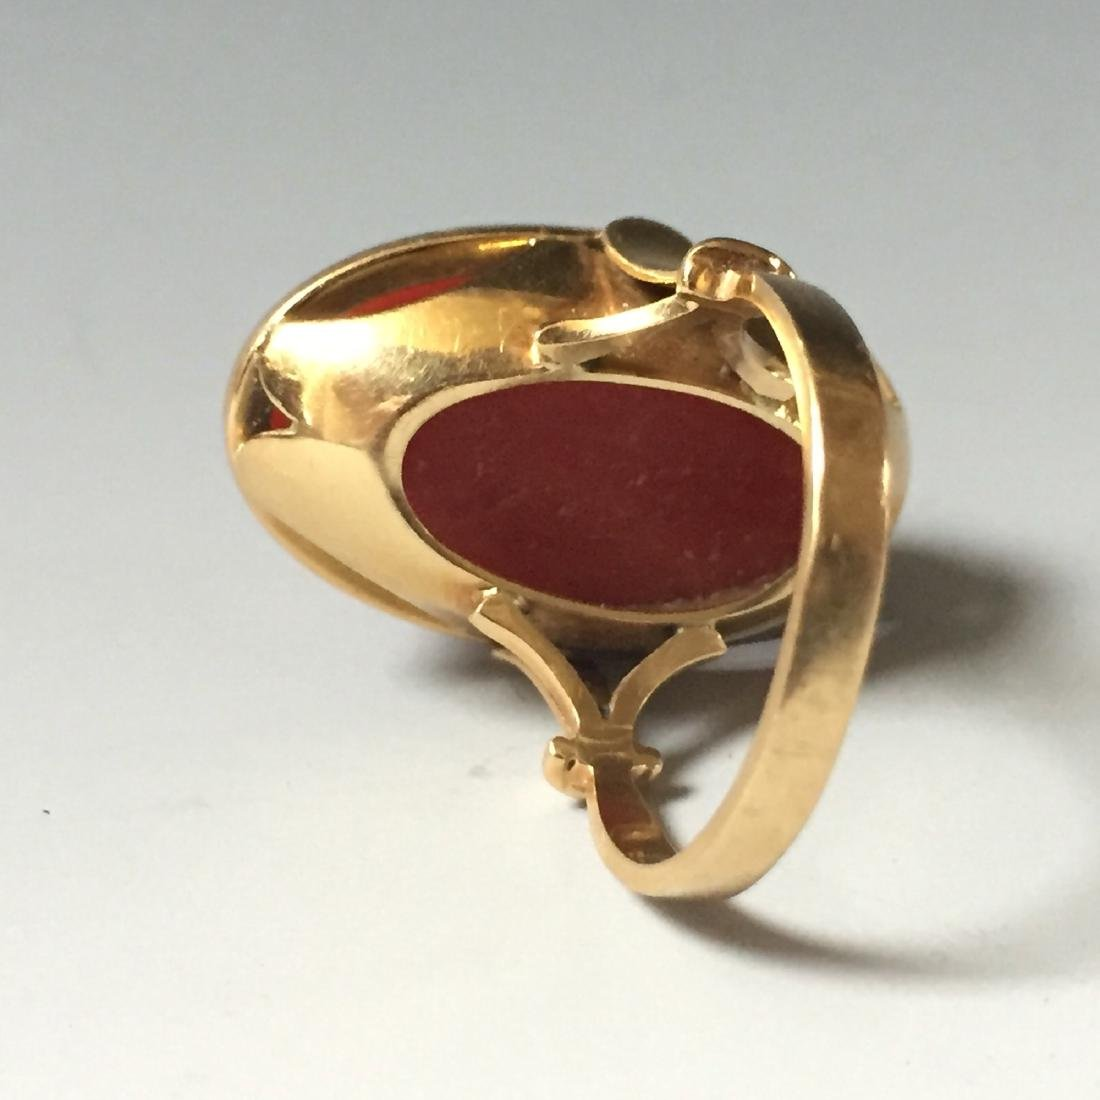 A FINE 14K GOLD RED CORAL RING, WEGHT: 10.20g. - 4